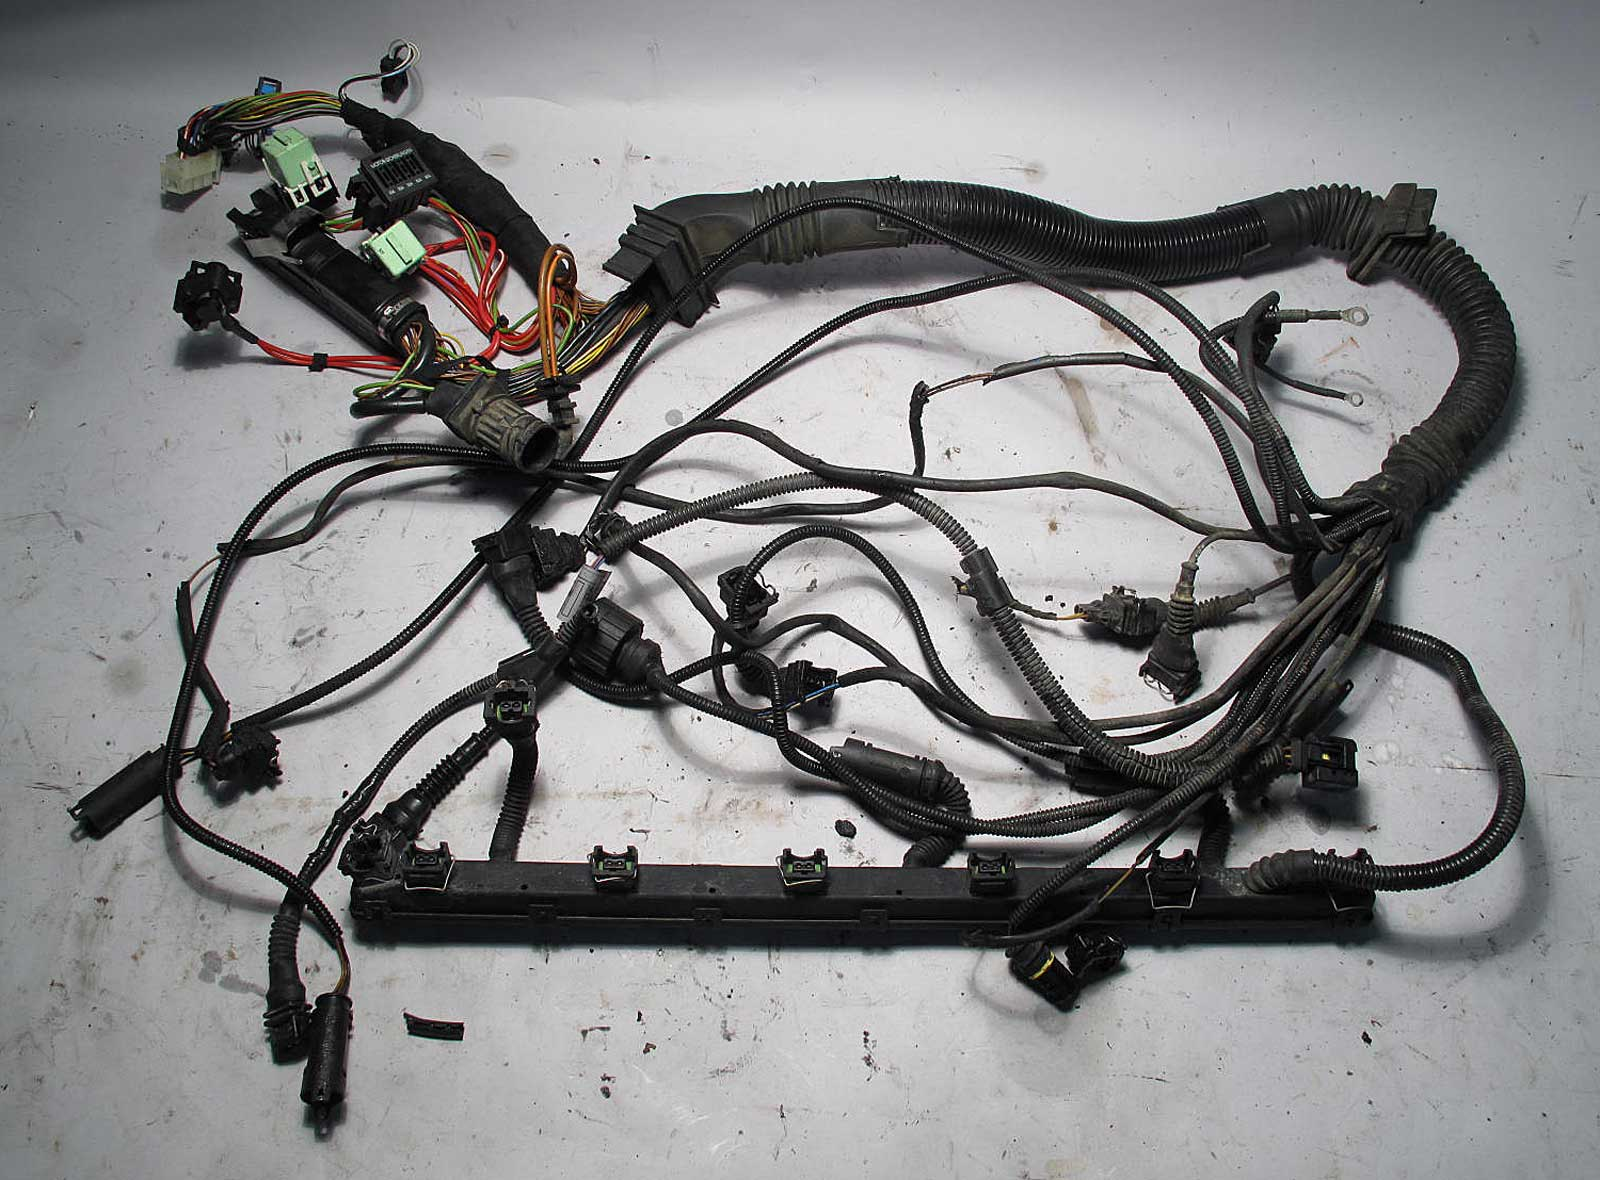 bmw e39 1998 528i 5 spd manual engine wiring harness ... dodge ram engine wiring harness di engine wiring harness